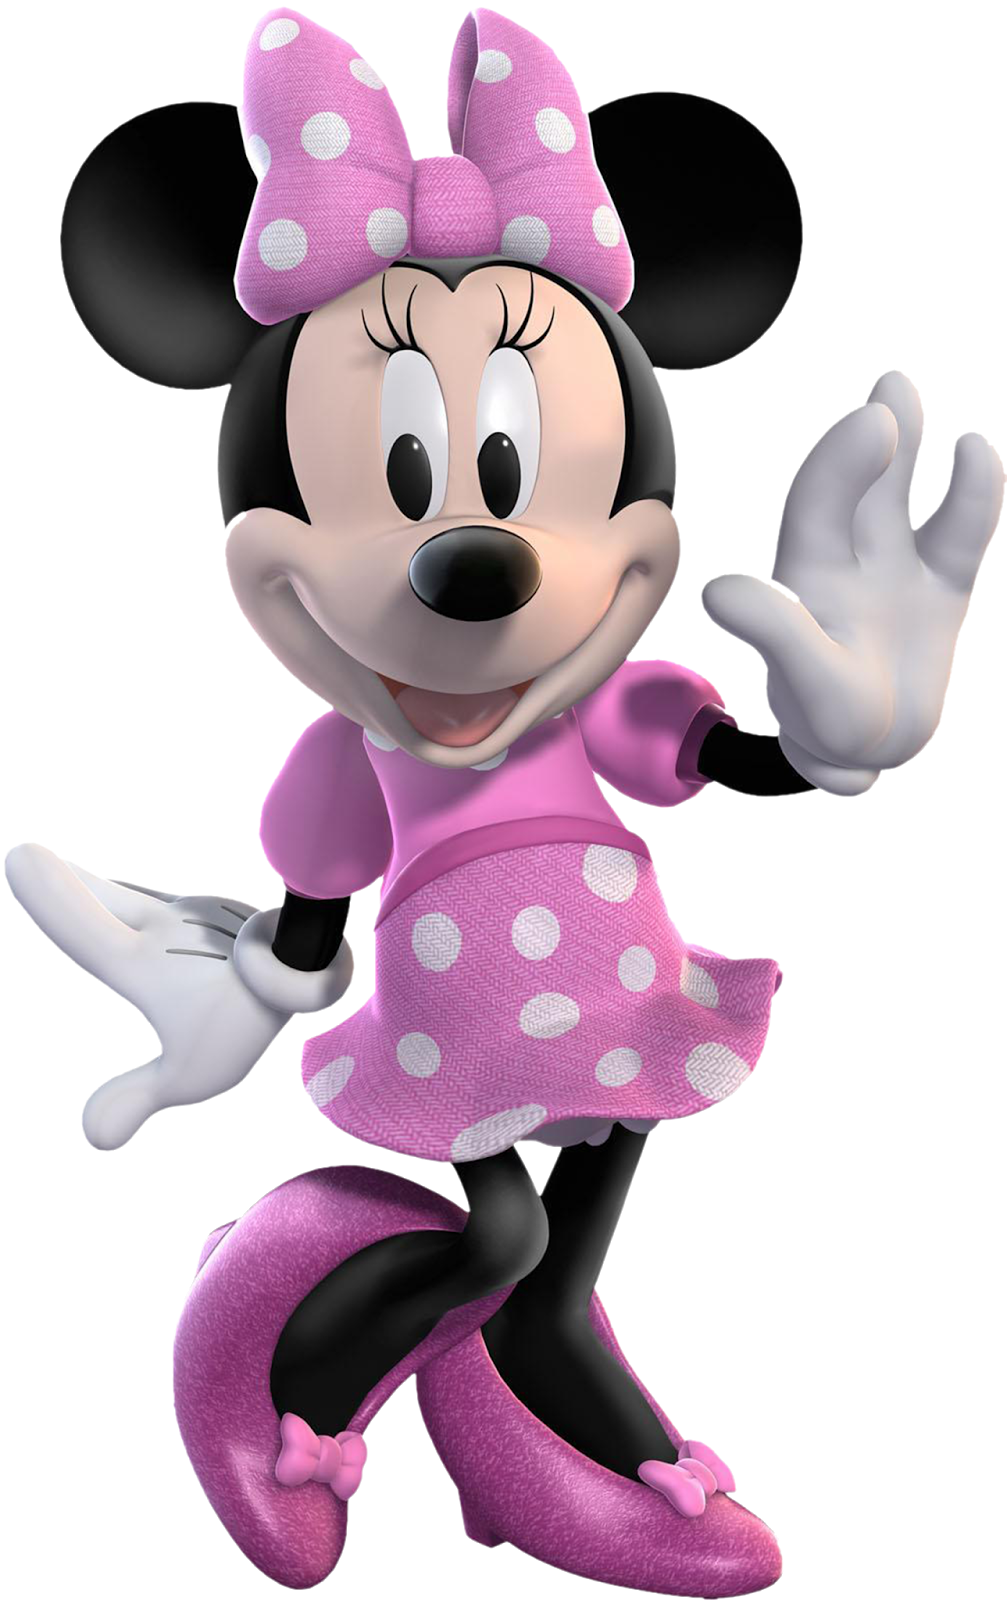 Mickey mouse clubhouse characters png. Disney minnie d pinterest